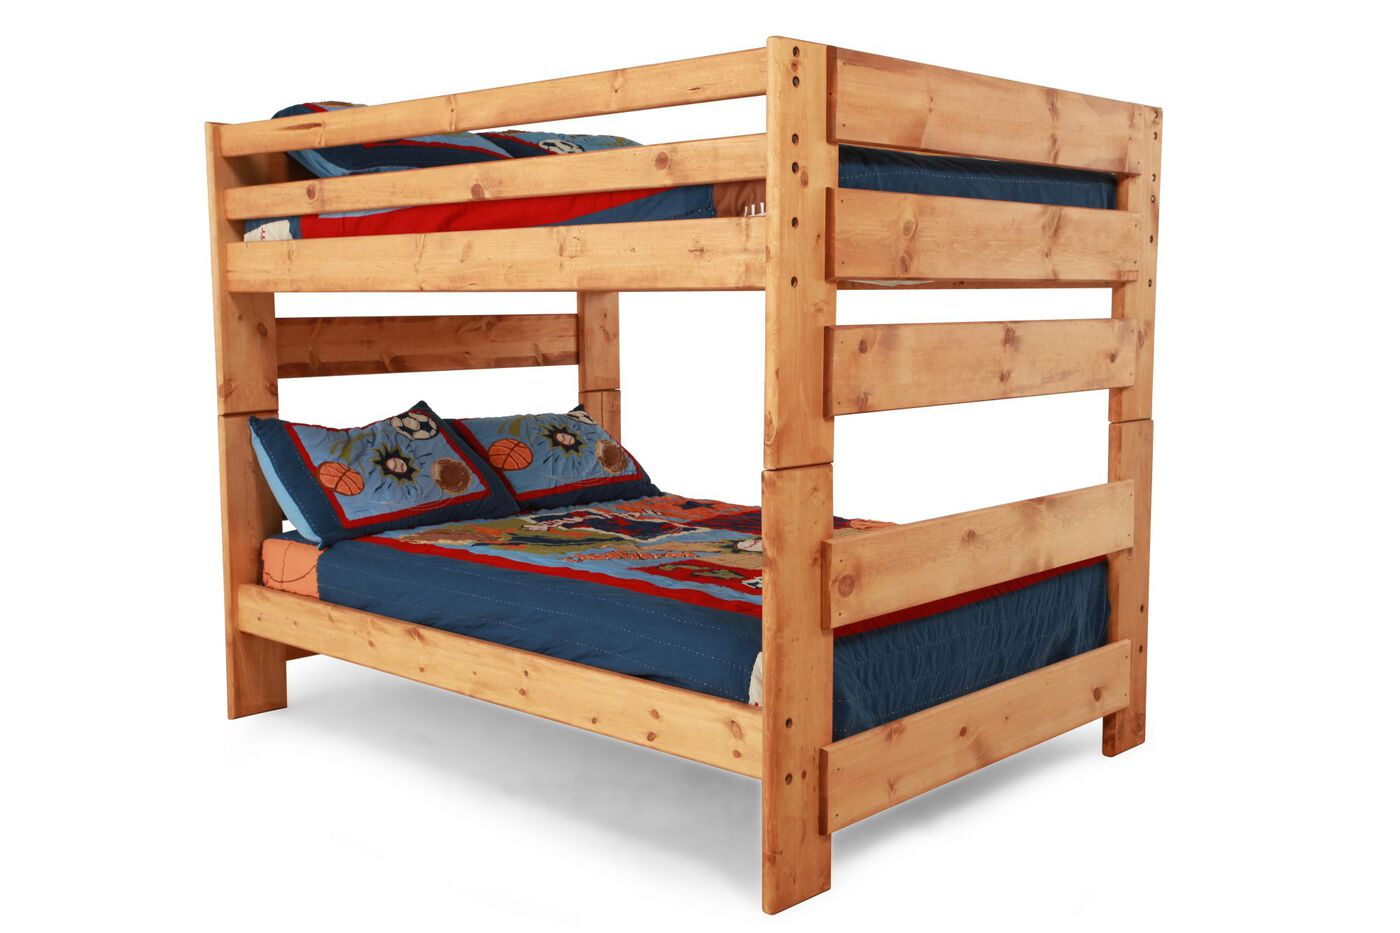 Bunk bed images